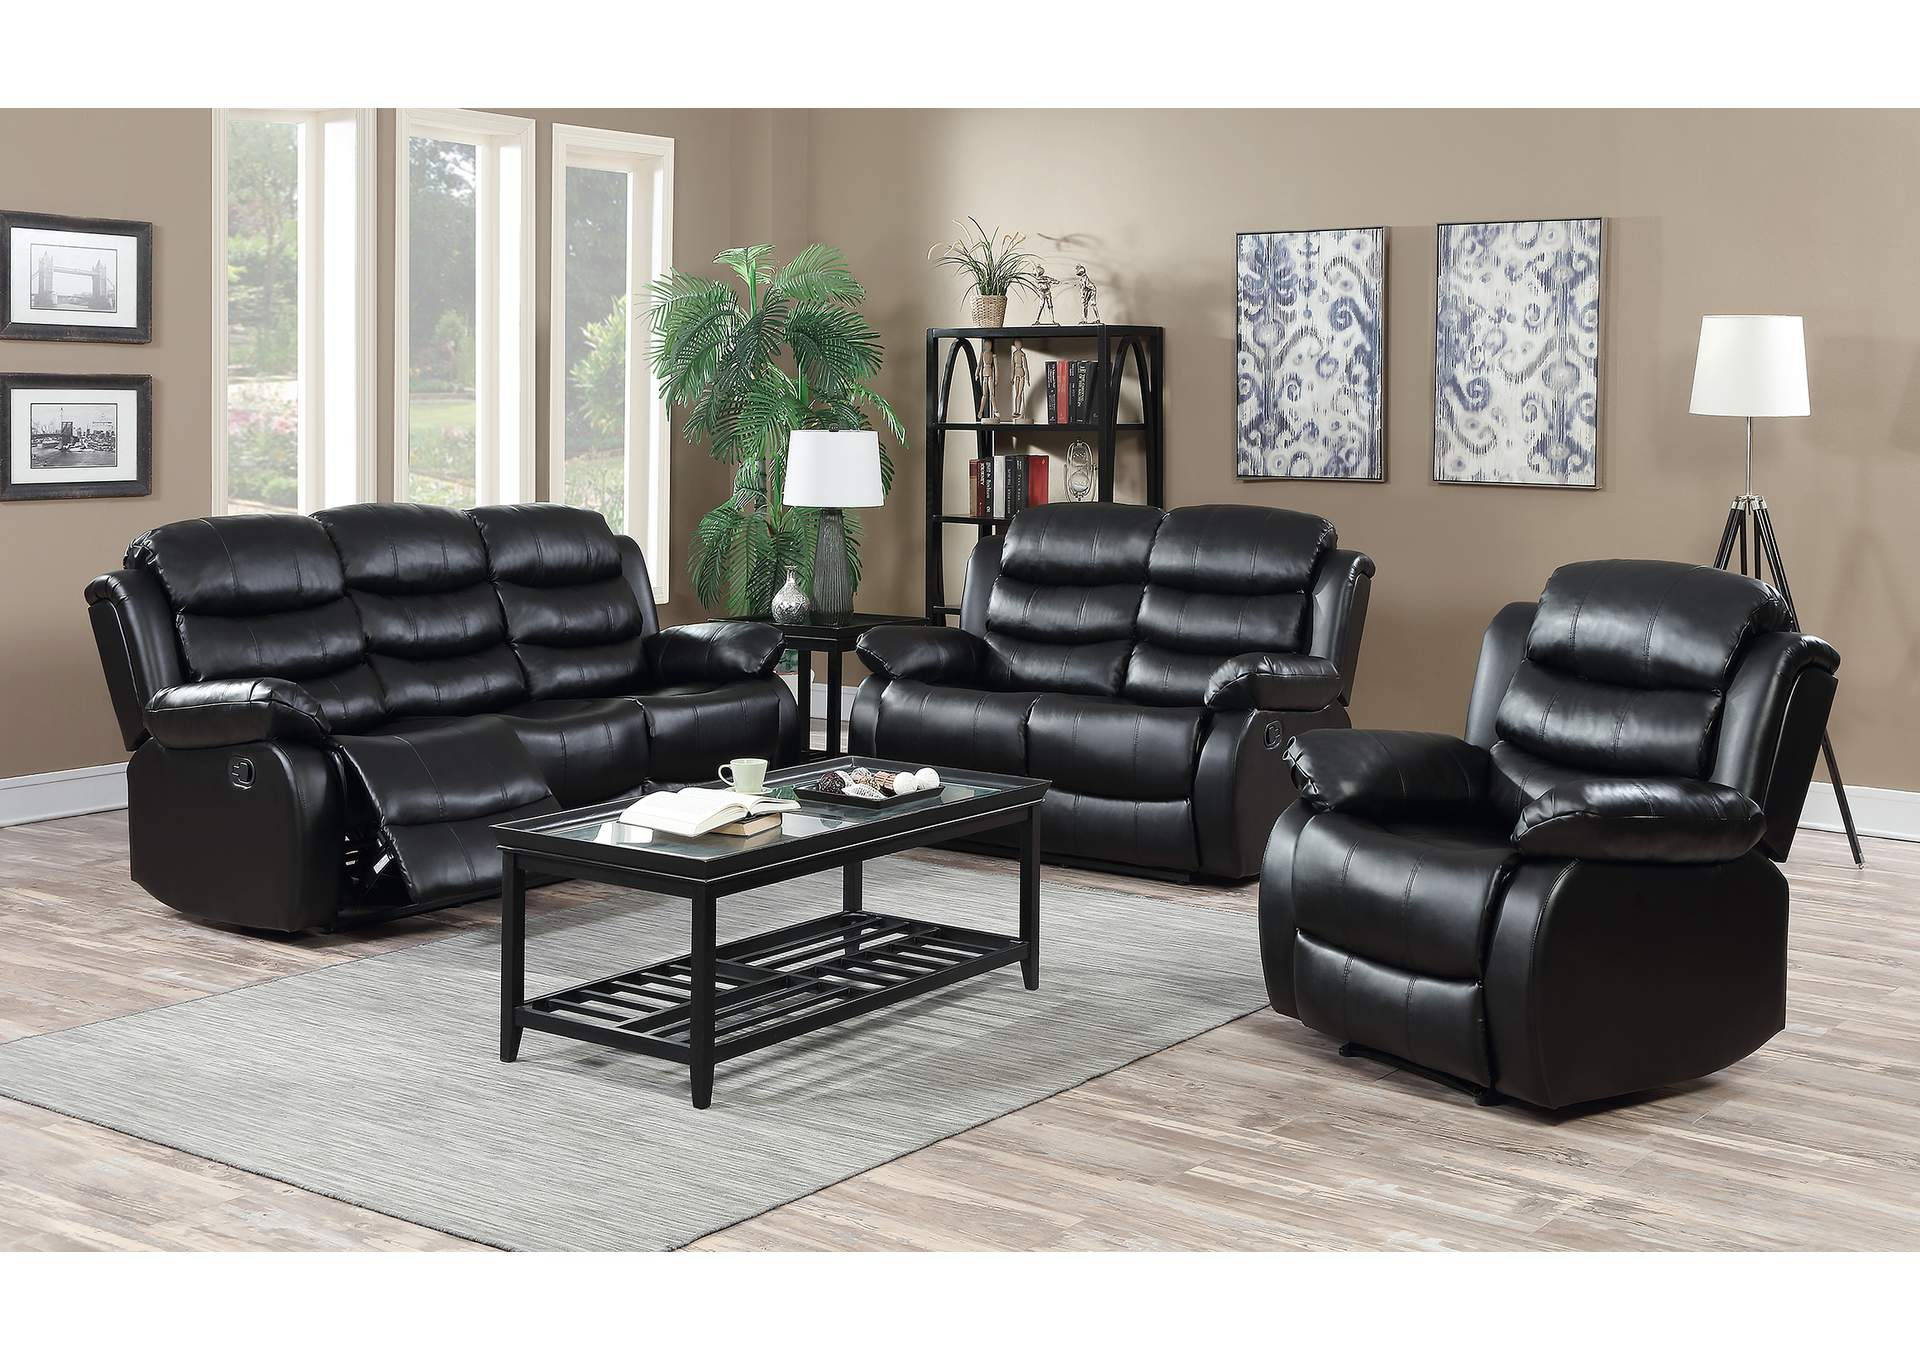 Black Reclining Sofa & Loveseat,Global Trading